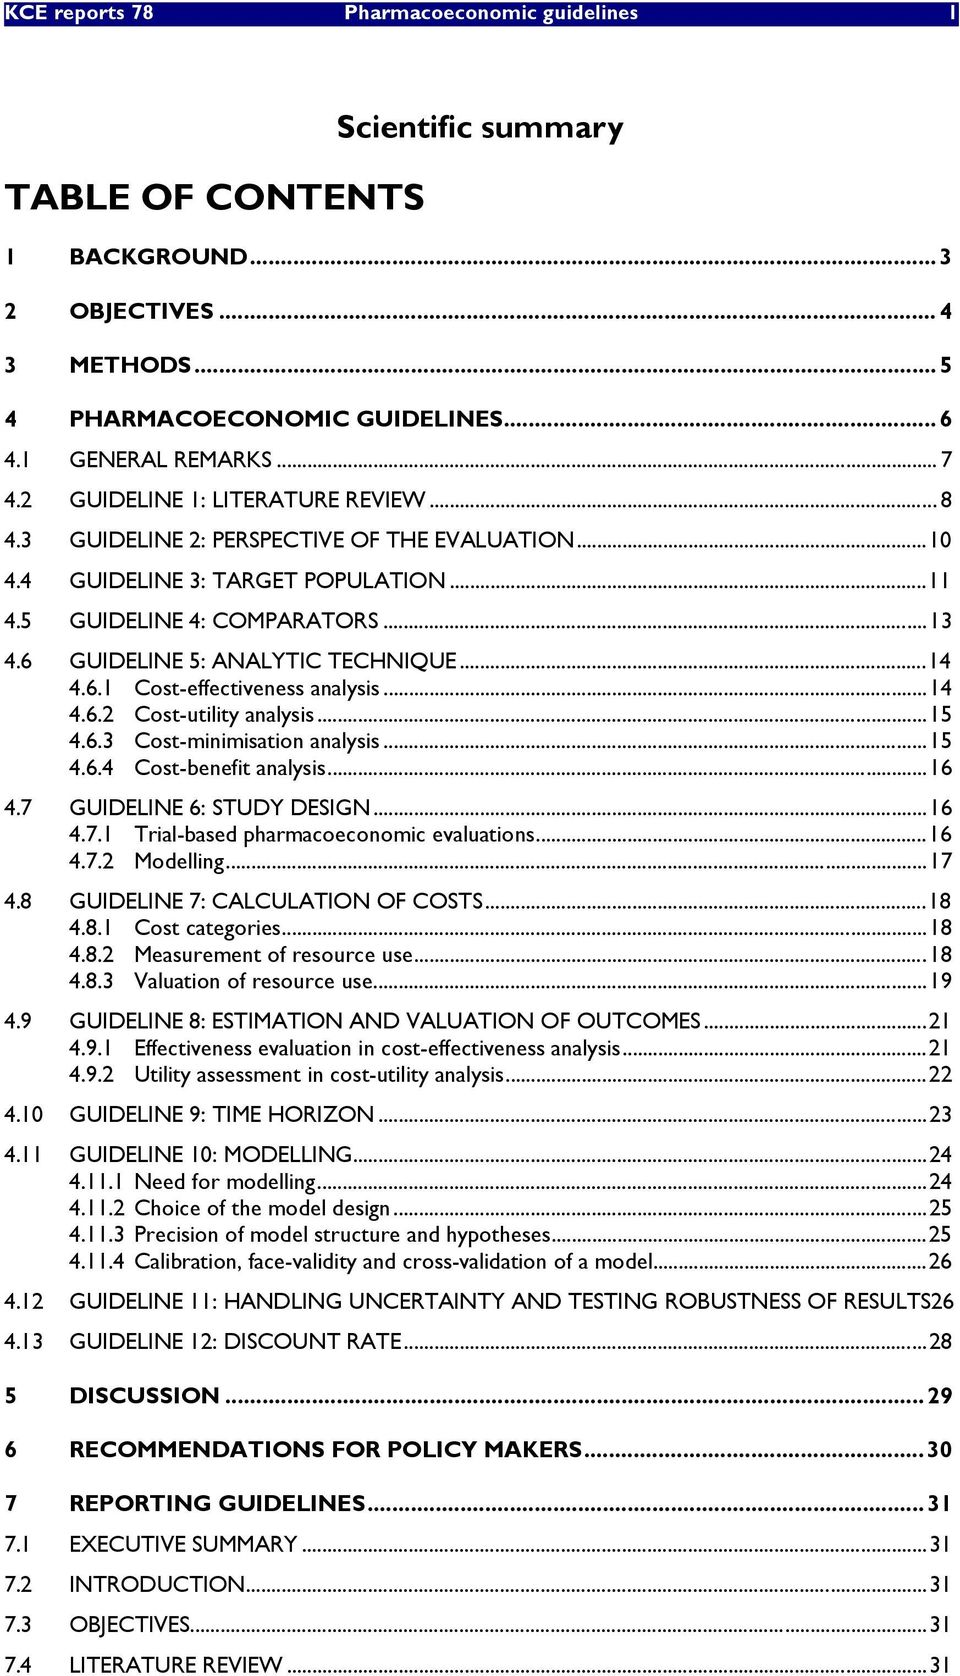 ..14 4.6.1 Cost-effectiveness analysis...14 4.6.2 Cost-utility analysis...15 4.6.3 Cost-minimisation analysis...15 4.6.4 Cost-benefit analysis...16 4.7 GUIDELINE 6: STUDY DESIGN...16 4.7.1 Trial-based pharmacoeconomic evaluations.